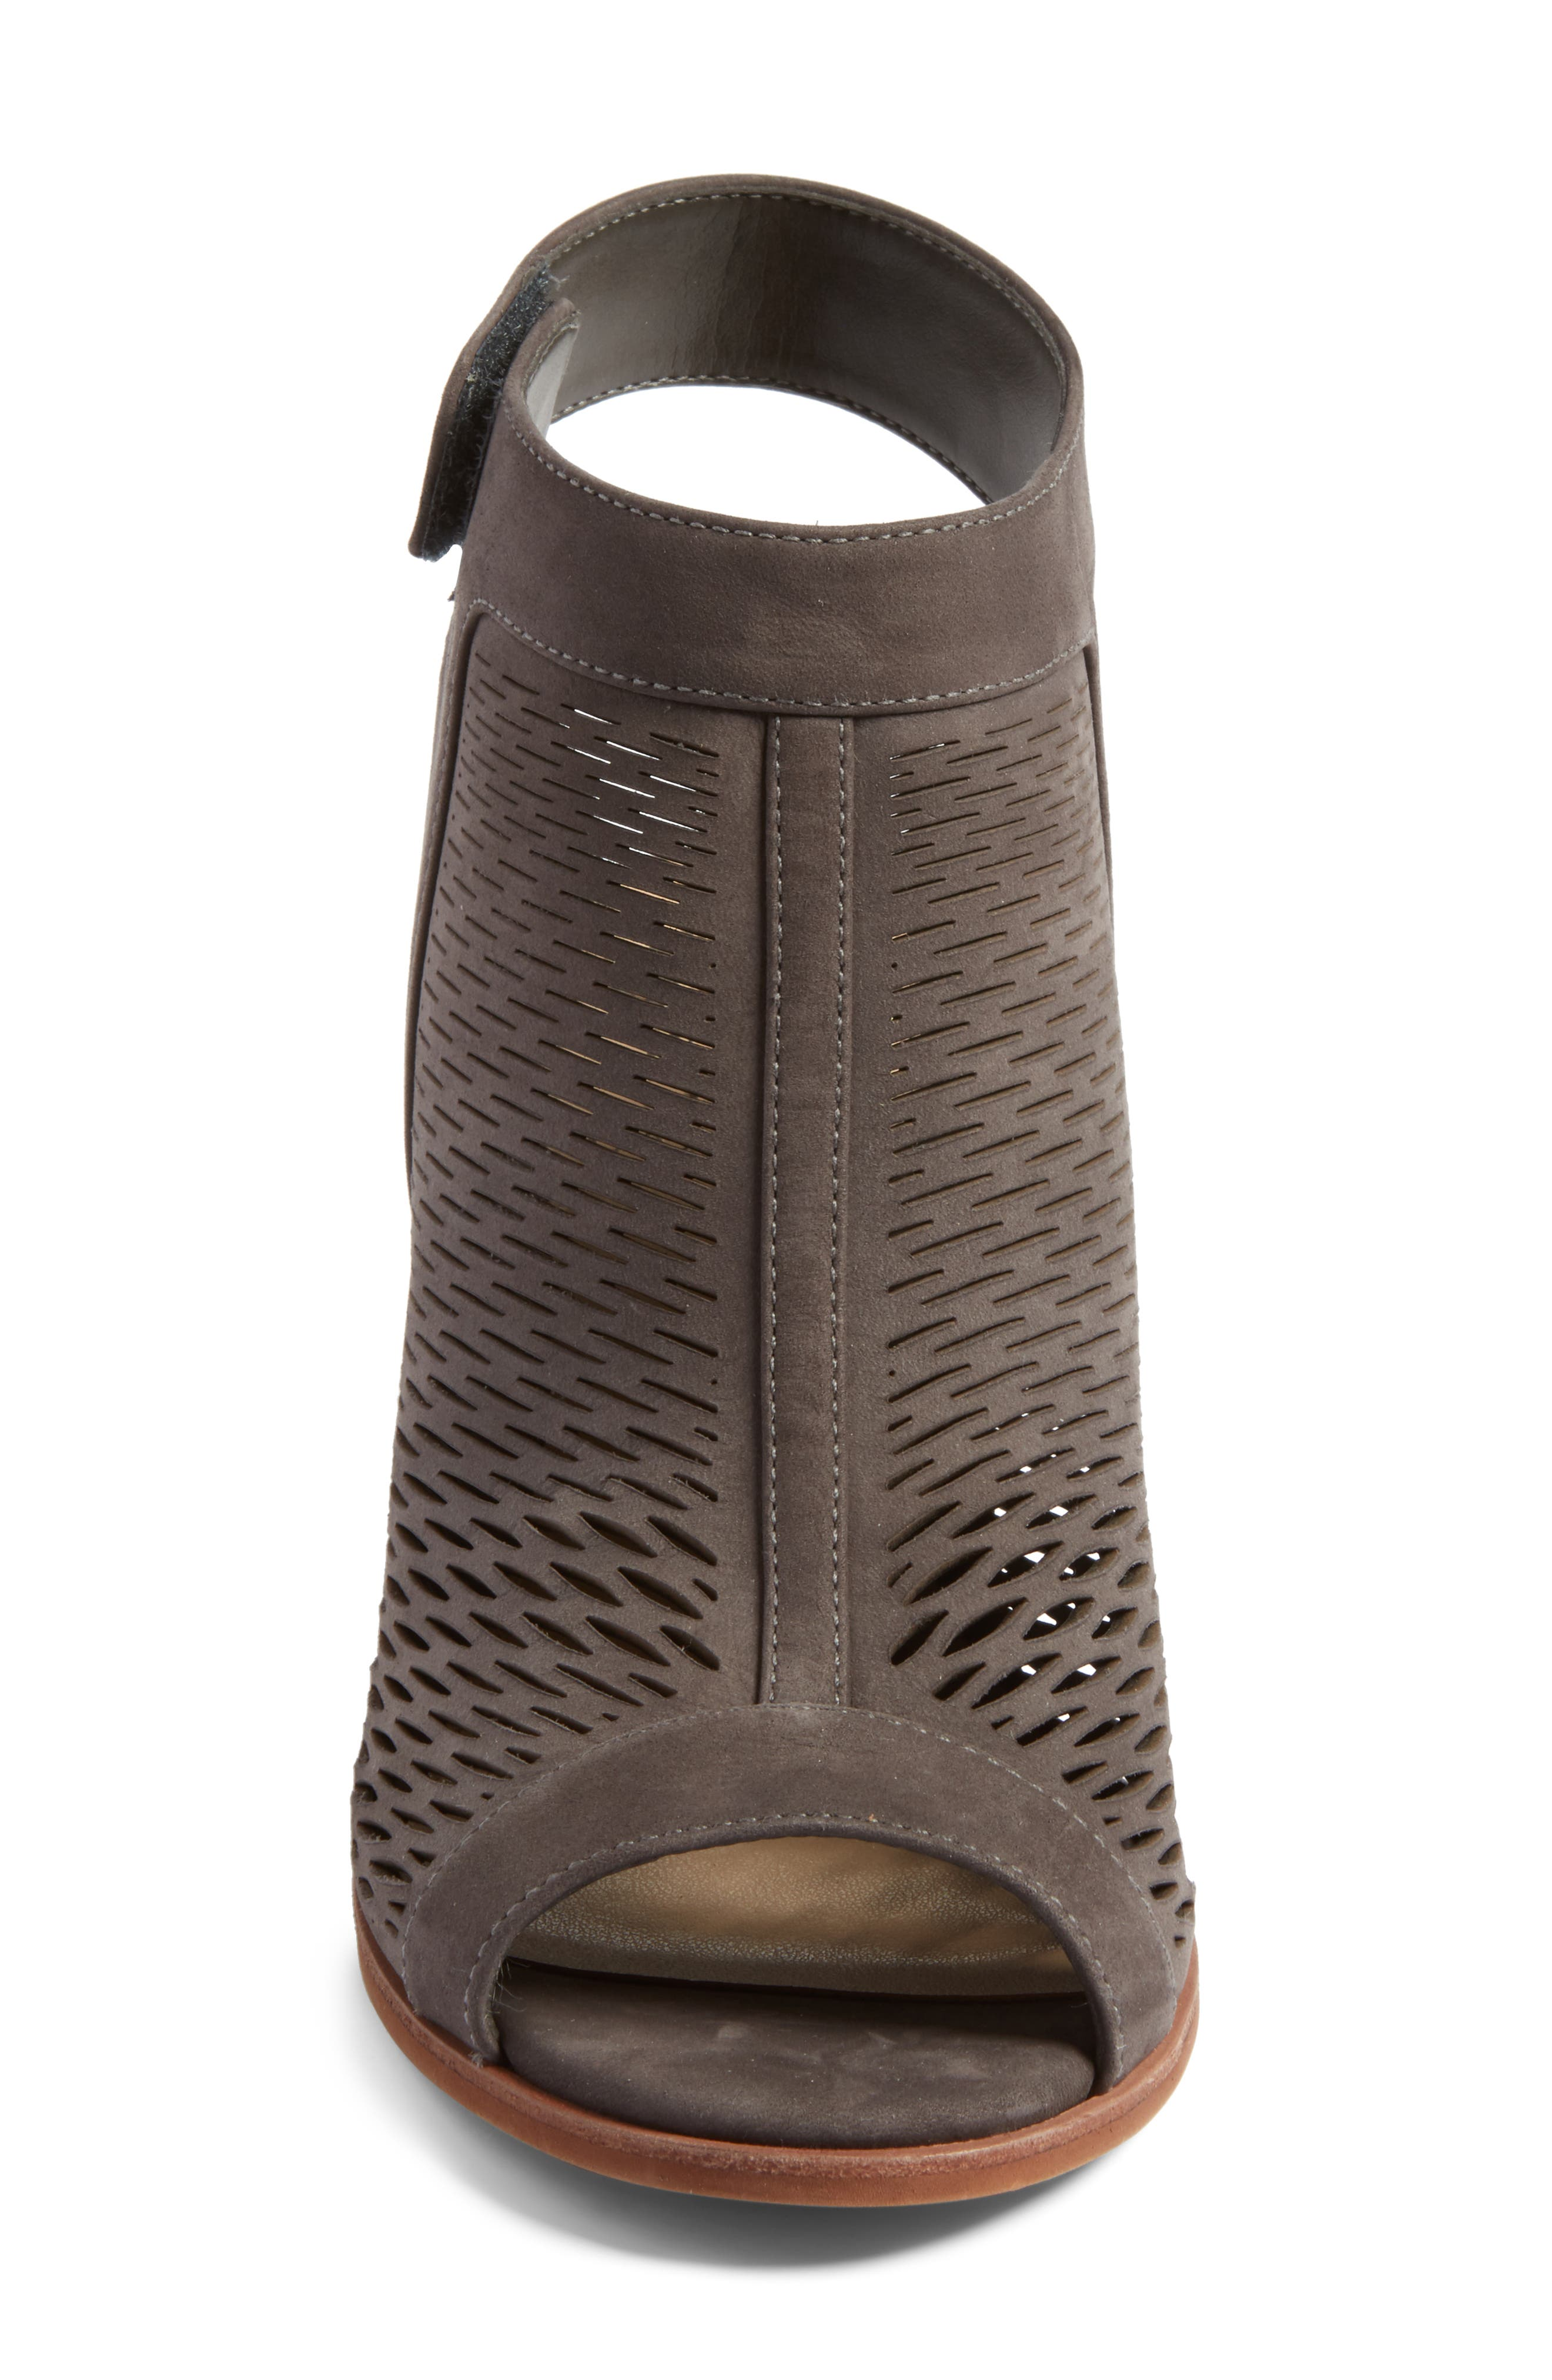 Alternate Image 4  - Vince Camuto 'Lavette' Perforated Peep Toe Bootie (Women) (Nordstrom Exclusive)